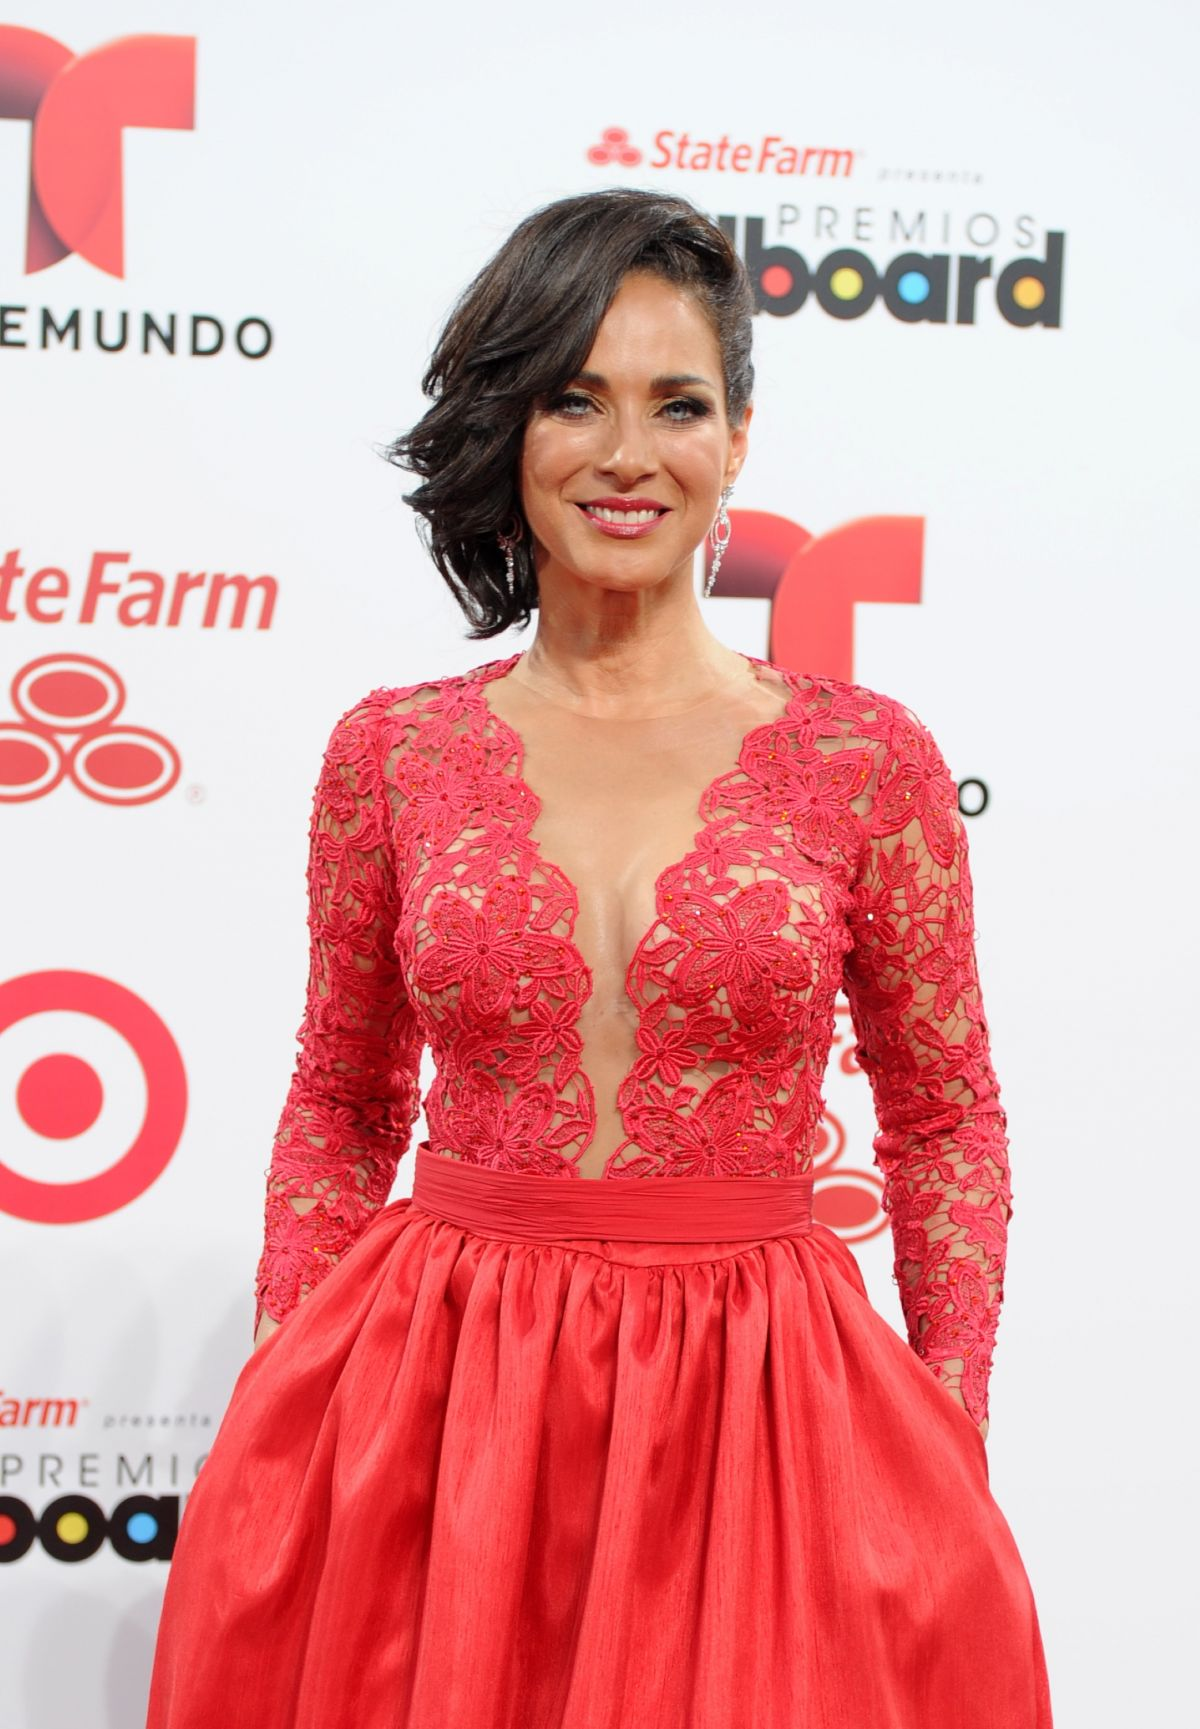 CARMEN DOMICCI at 2014 Billboard Latin Music Awards in Miami